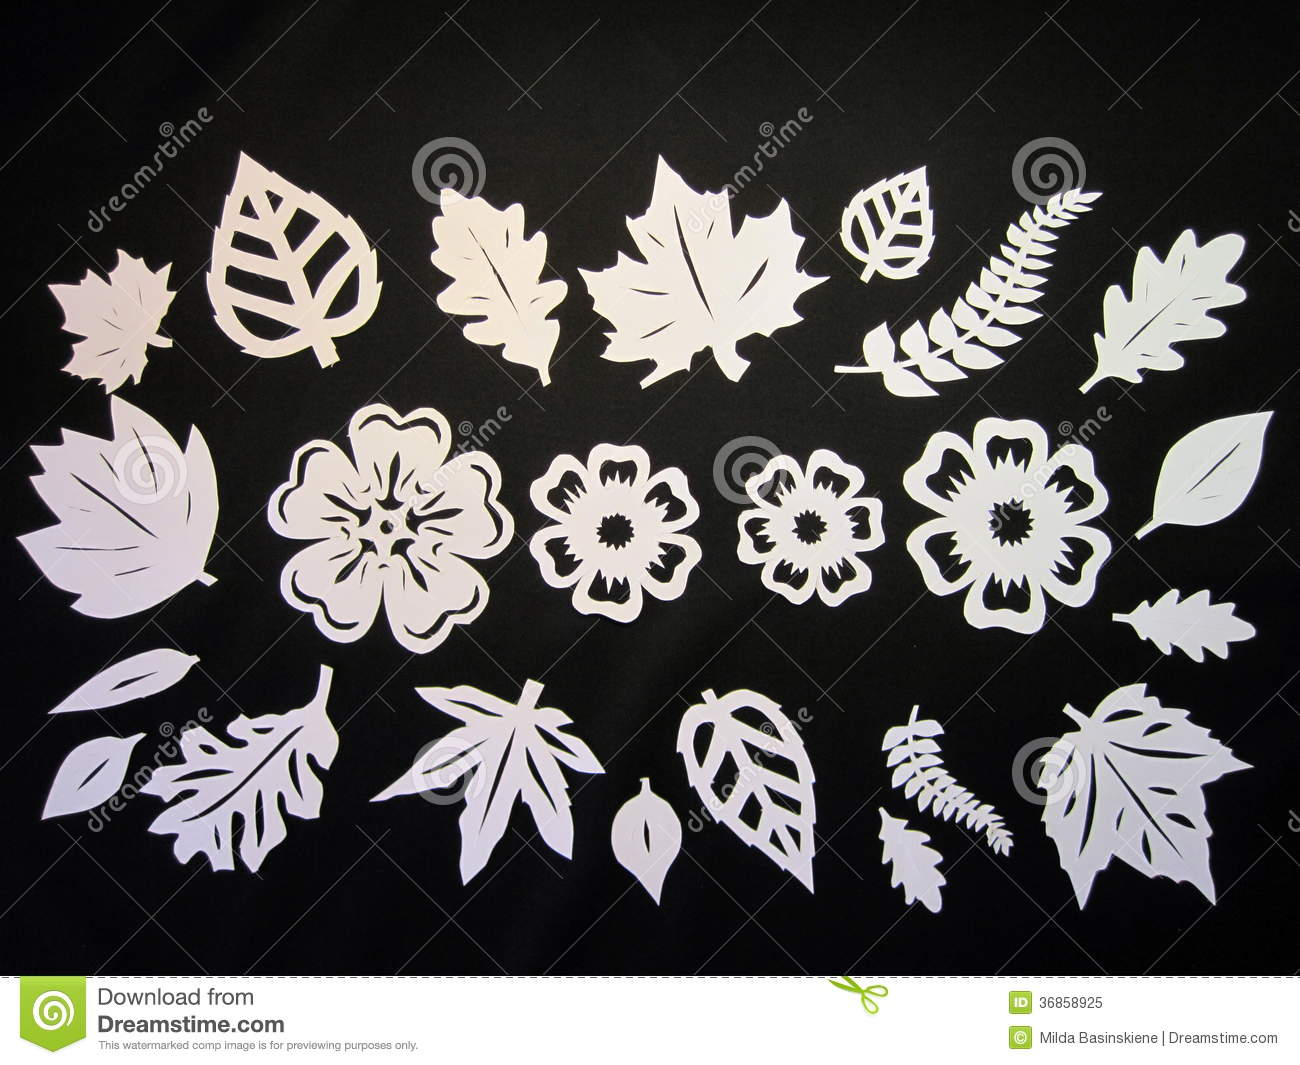 White leaves anf flowers paper cutting stock image image of idea download white leaves anf flowers paper cutting stock image image of idea mightylinksfo